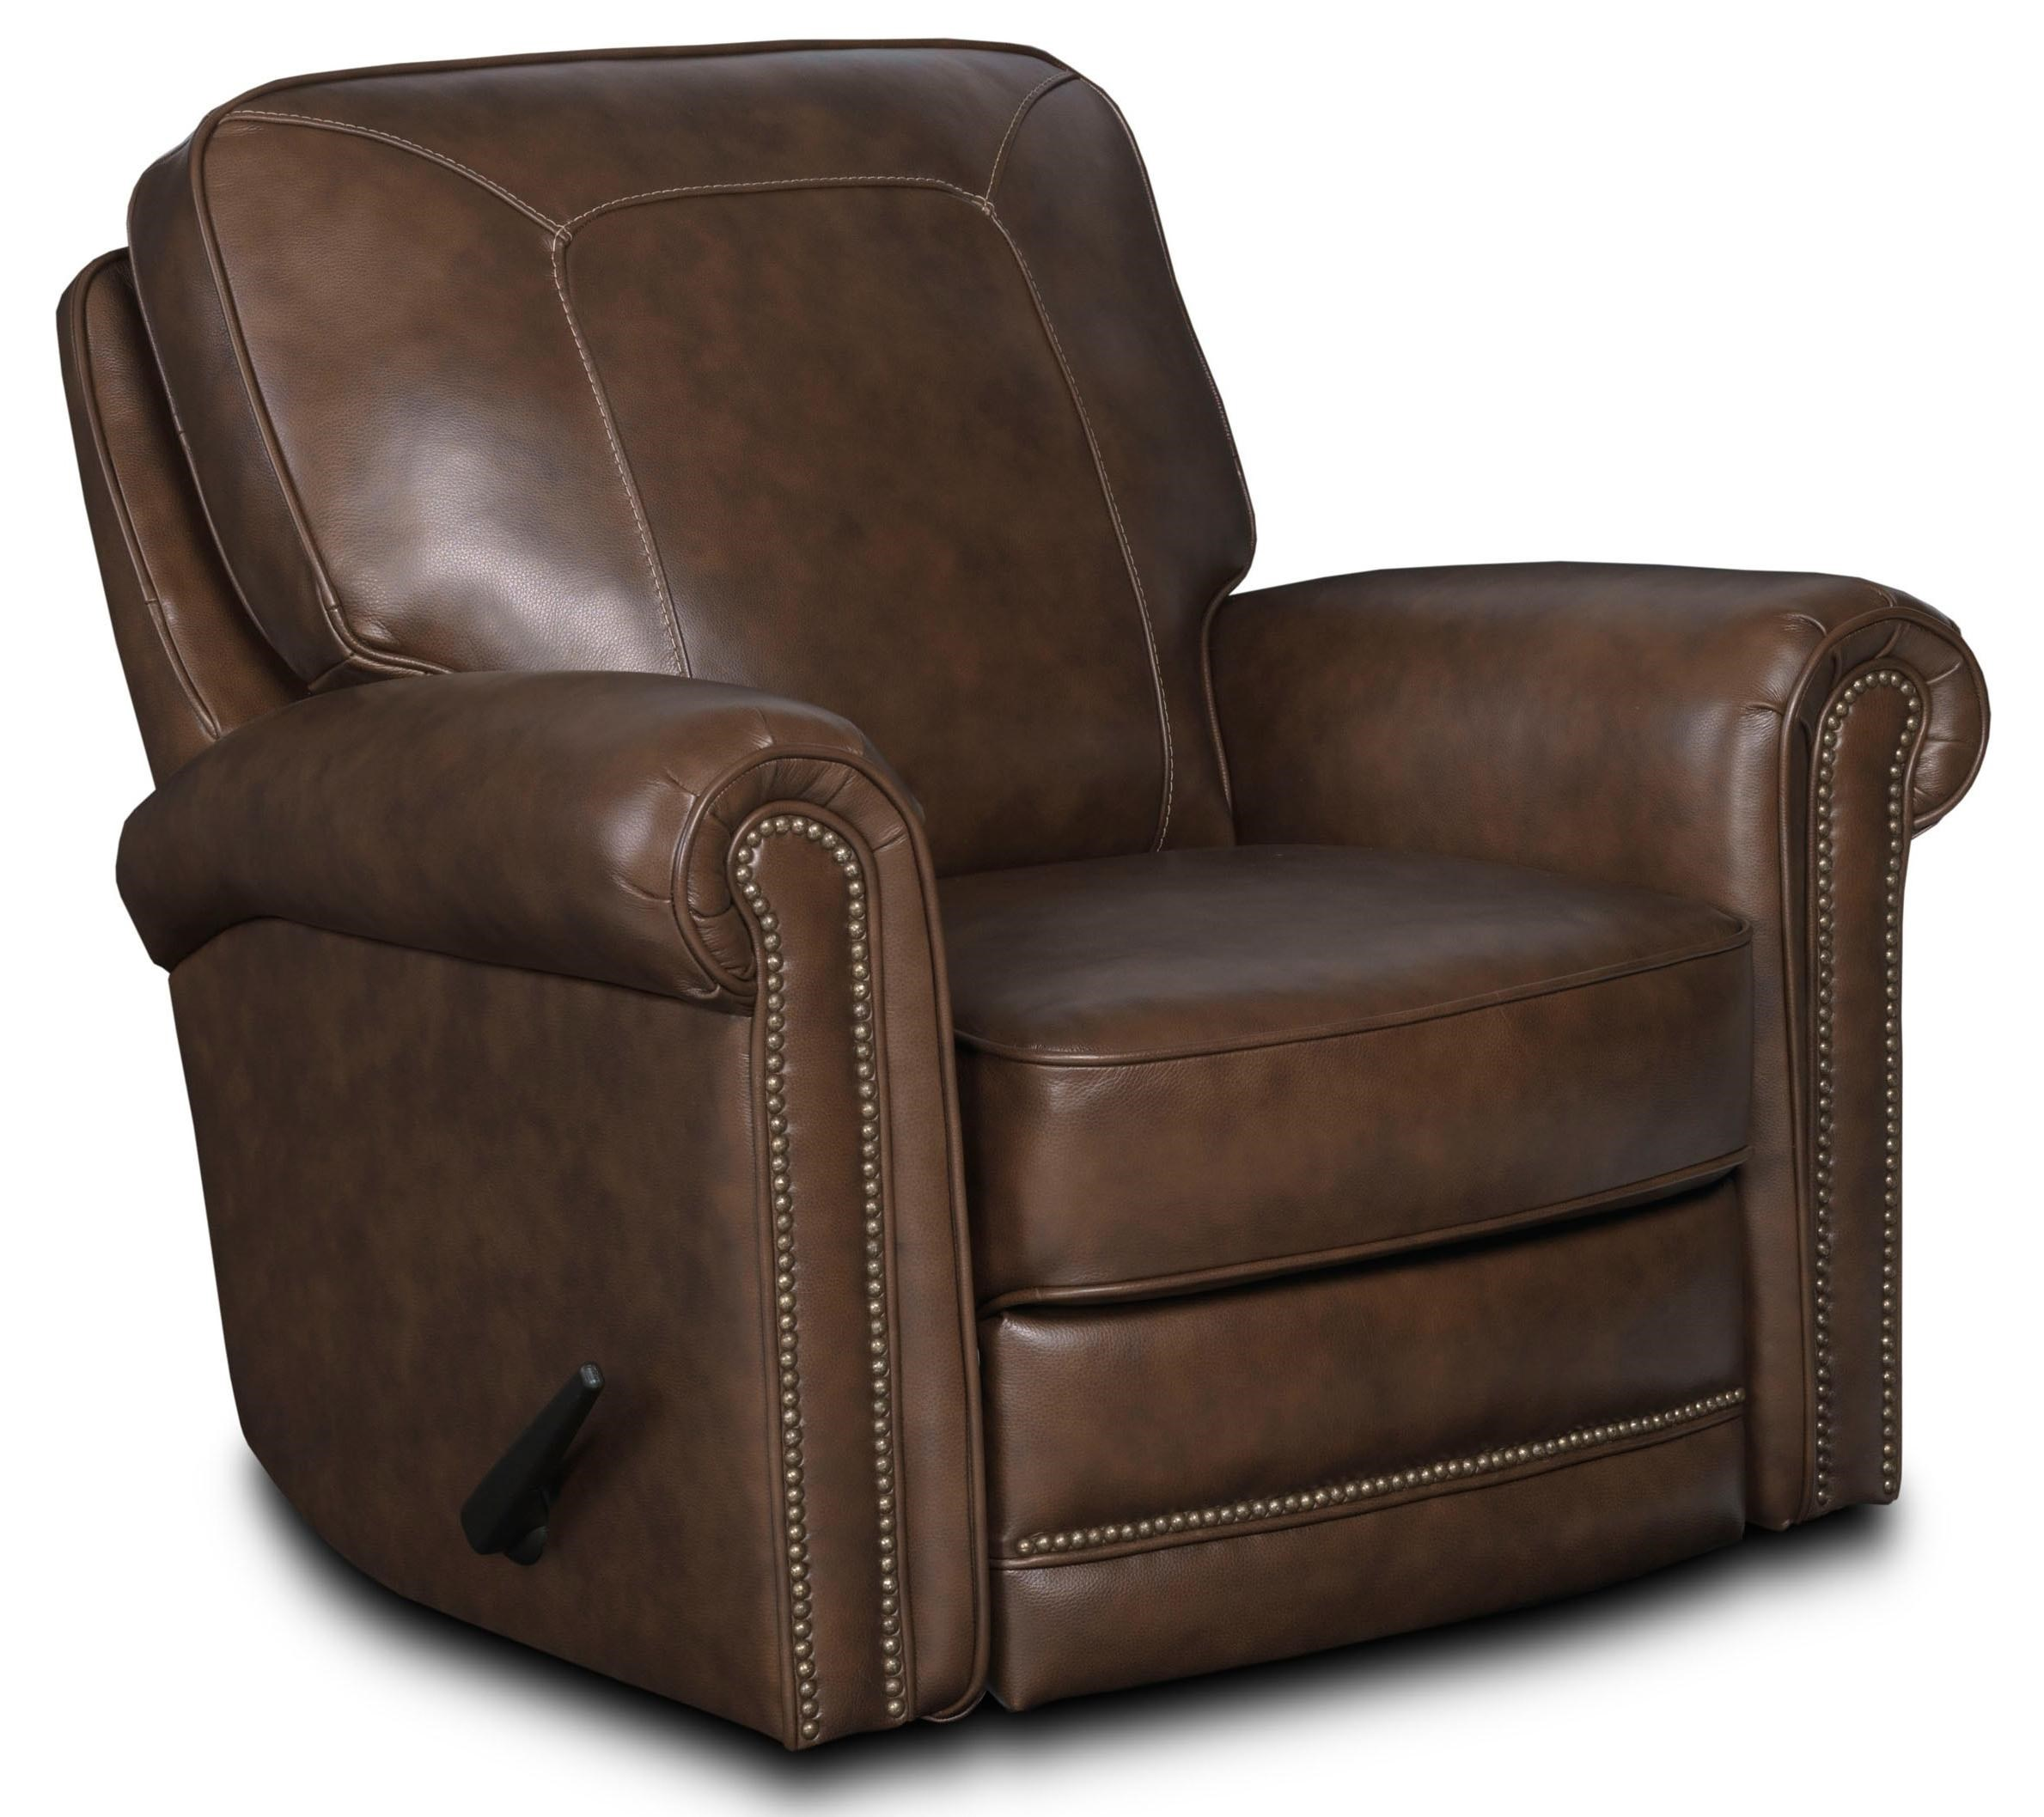 Lane Jasmine Traditional Manual Swivel Glider Rocker Recliner